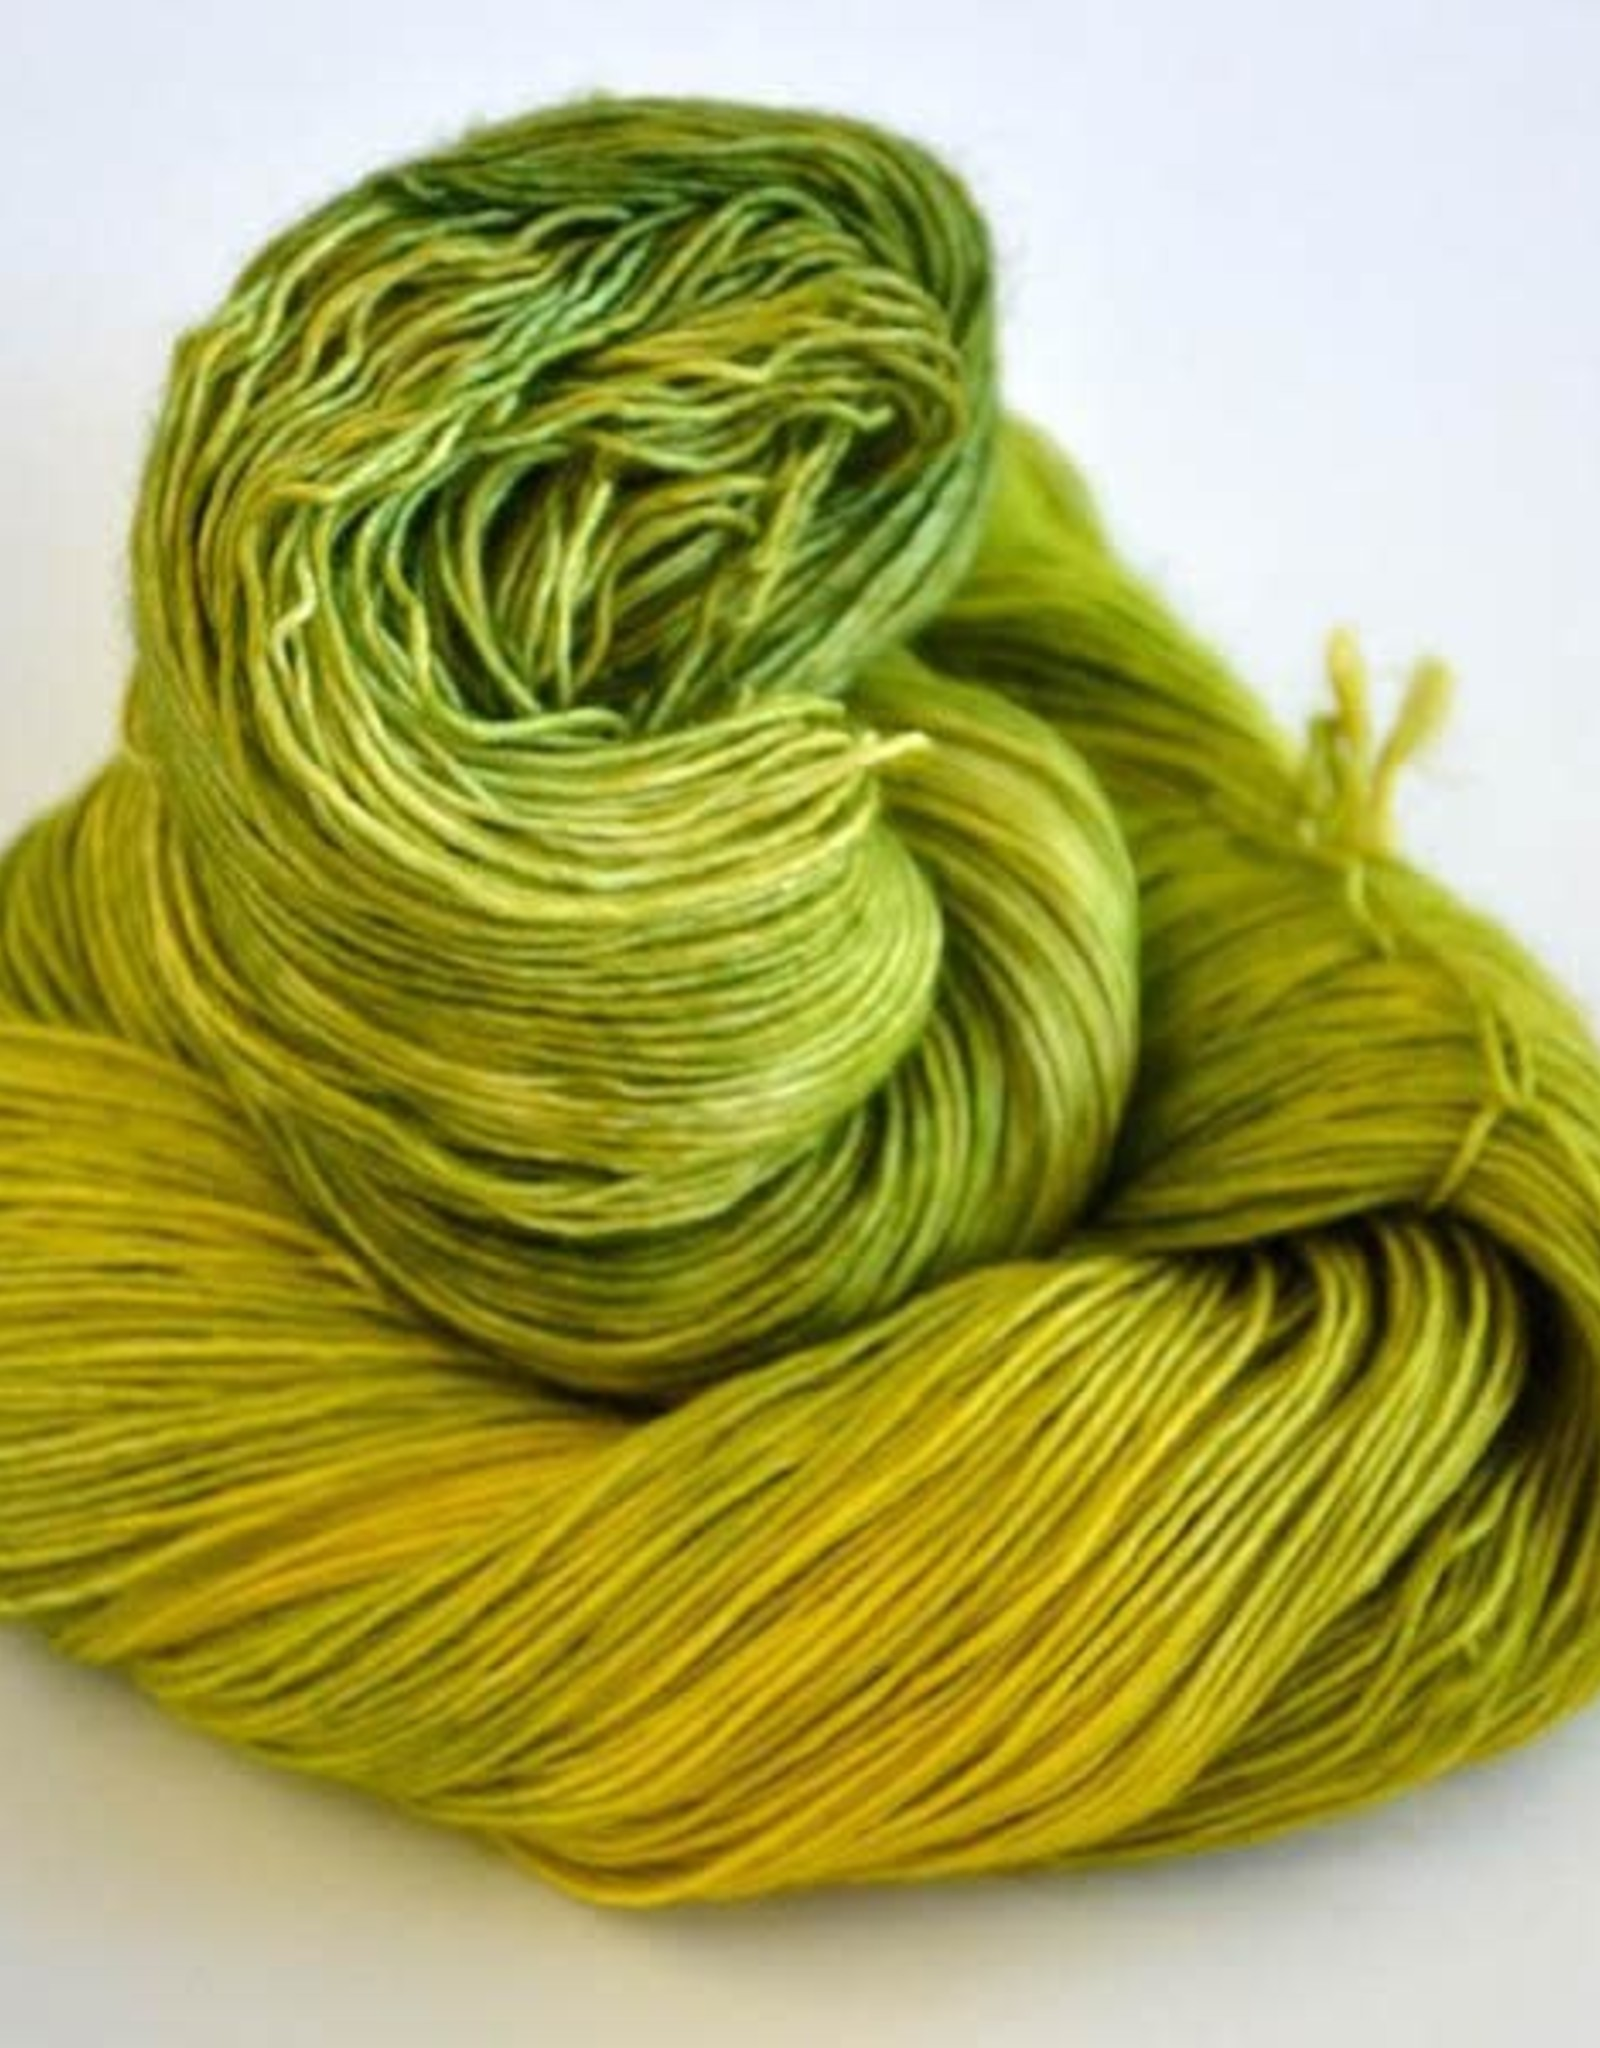 Riverside Studio - 80/20 Sock - Wasabi